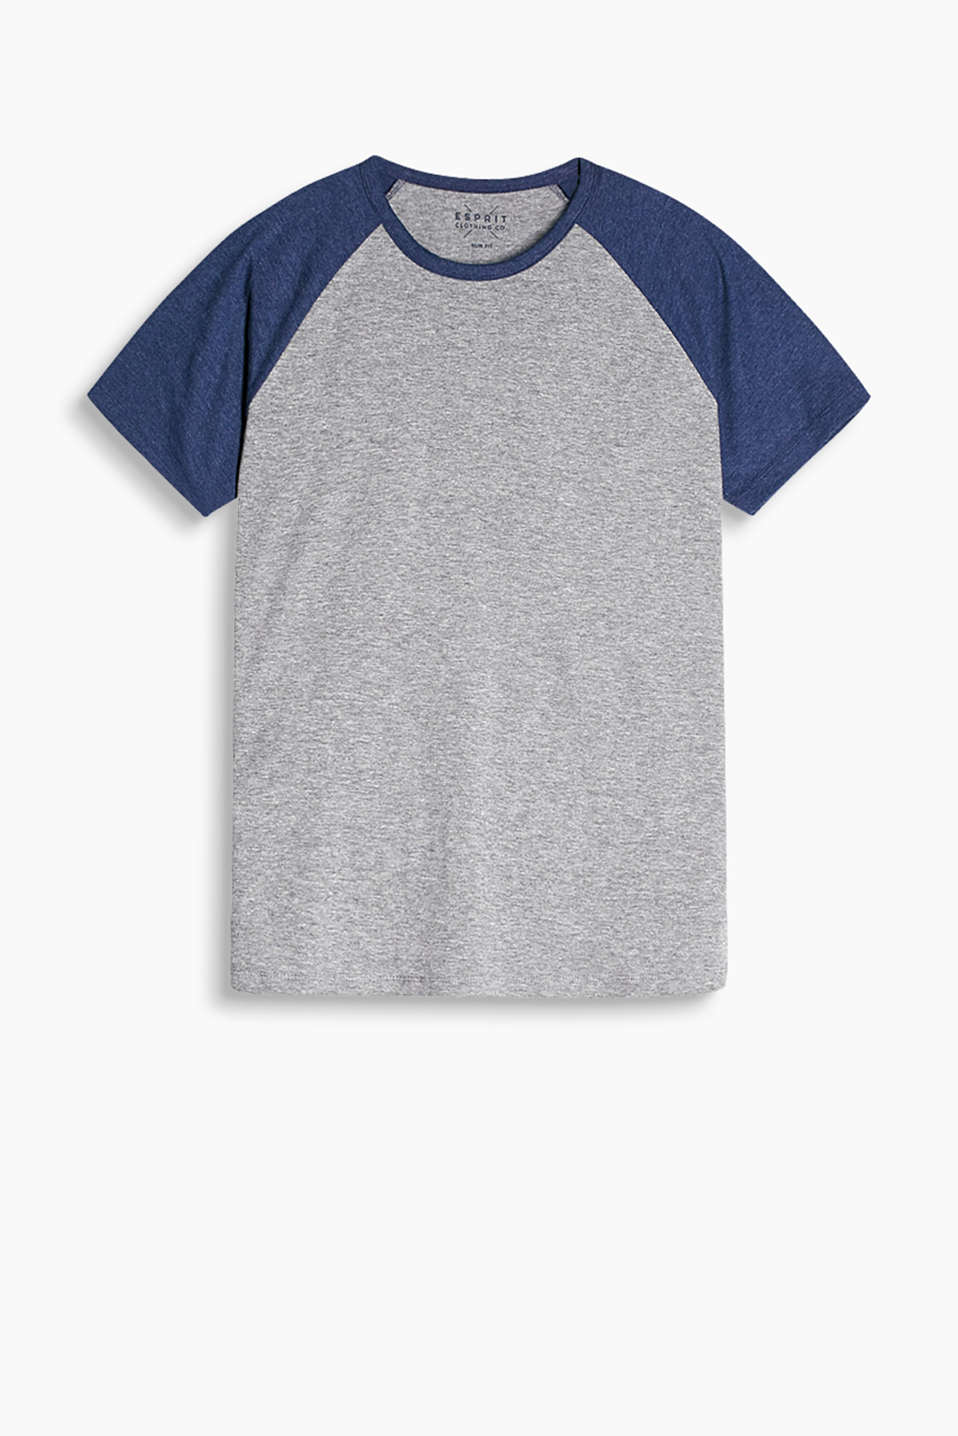 Raglan sleeve T-shirt made of soft blended cotton